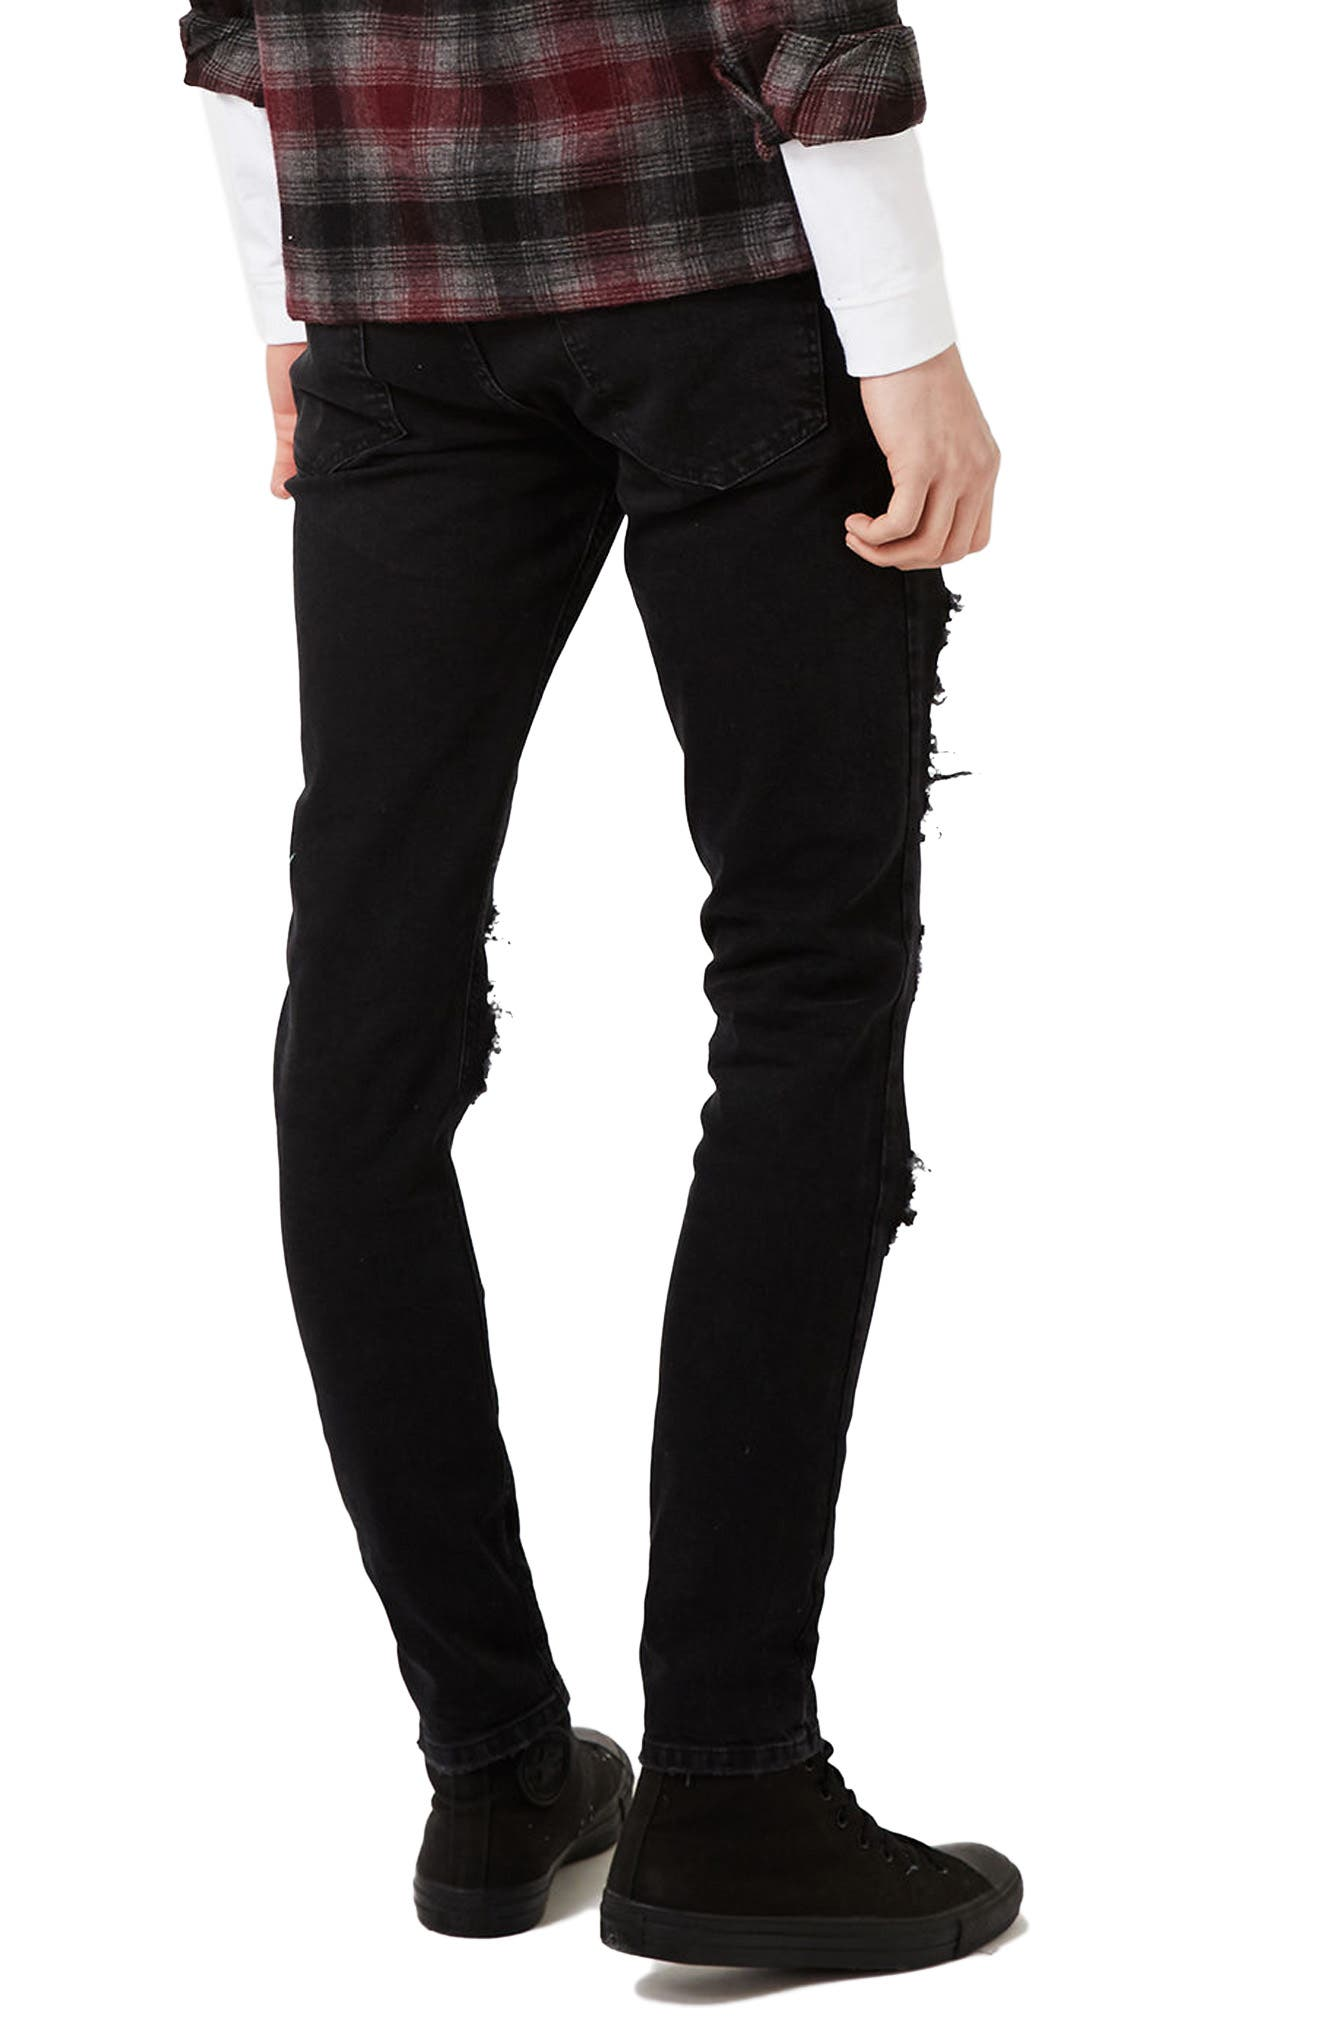 Extreme Ripped Stretch Skinny Fit Jeans,                             Alternate thumbnail 2, color,                             001